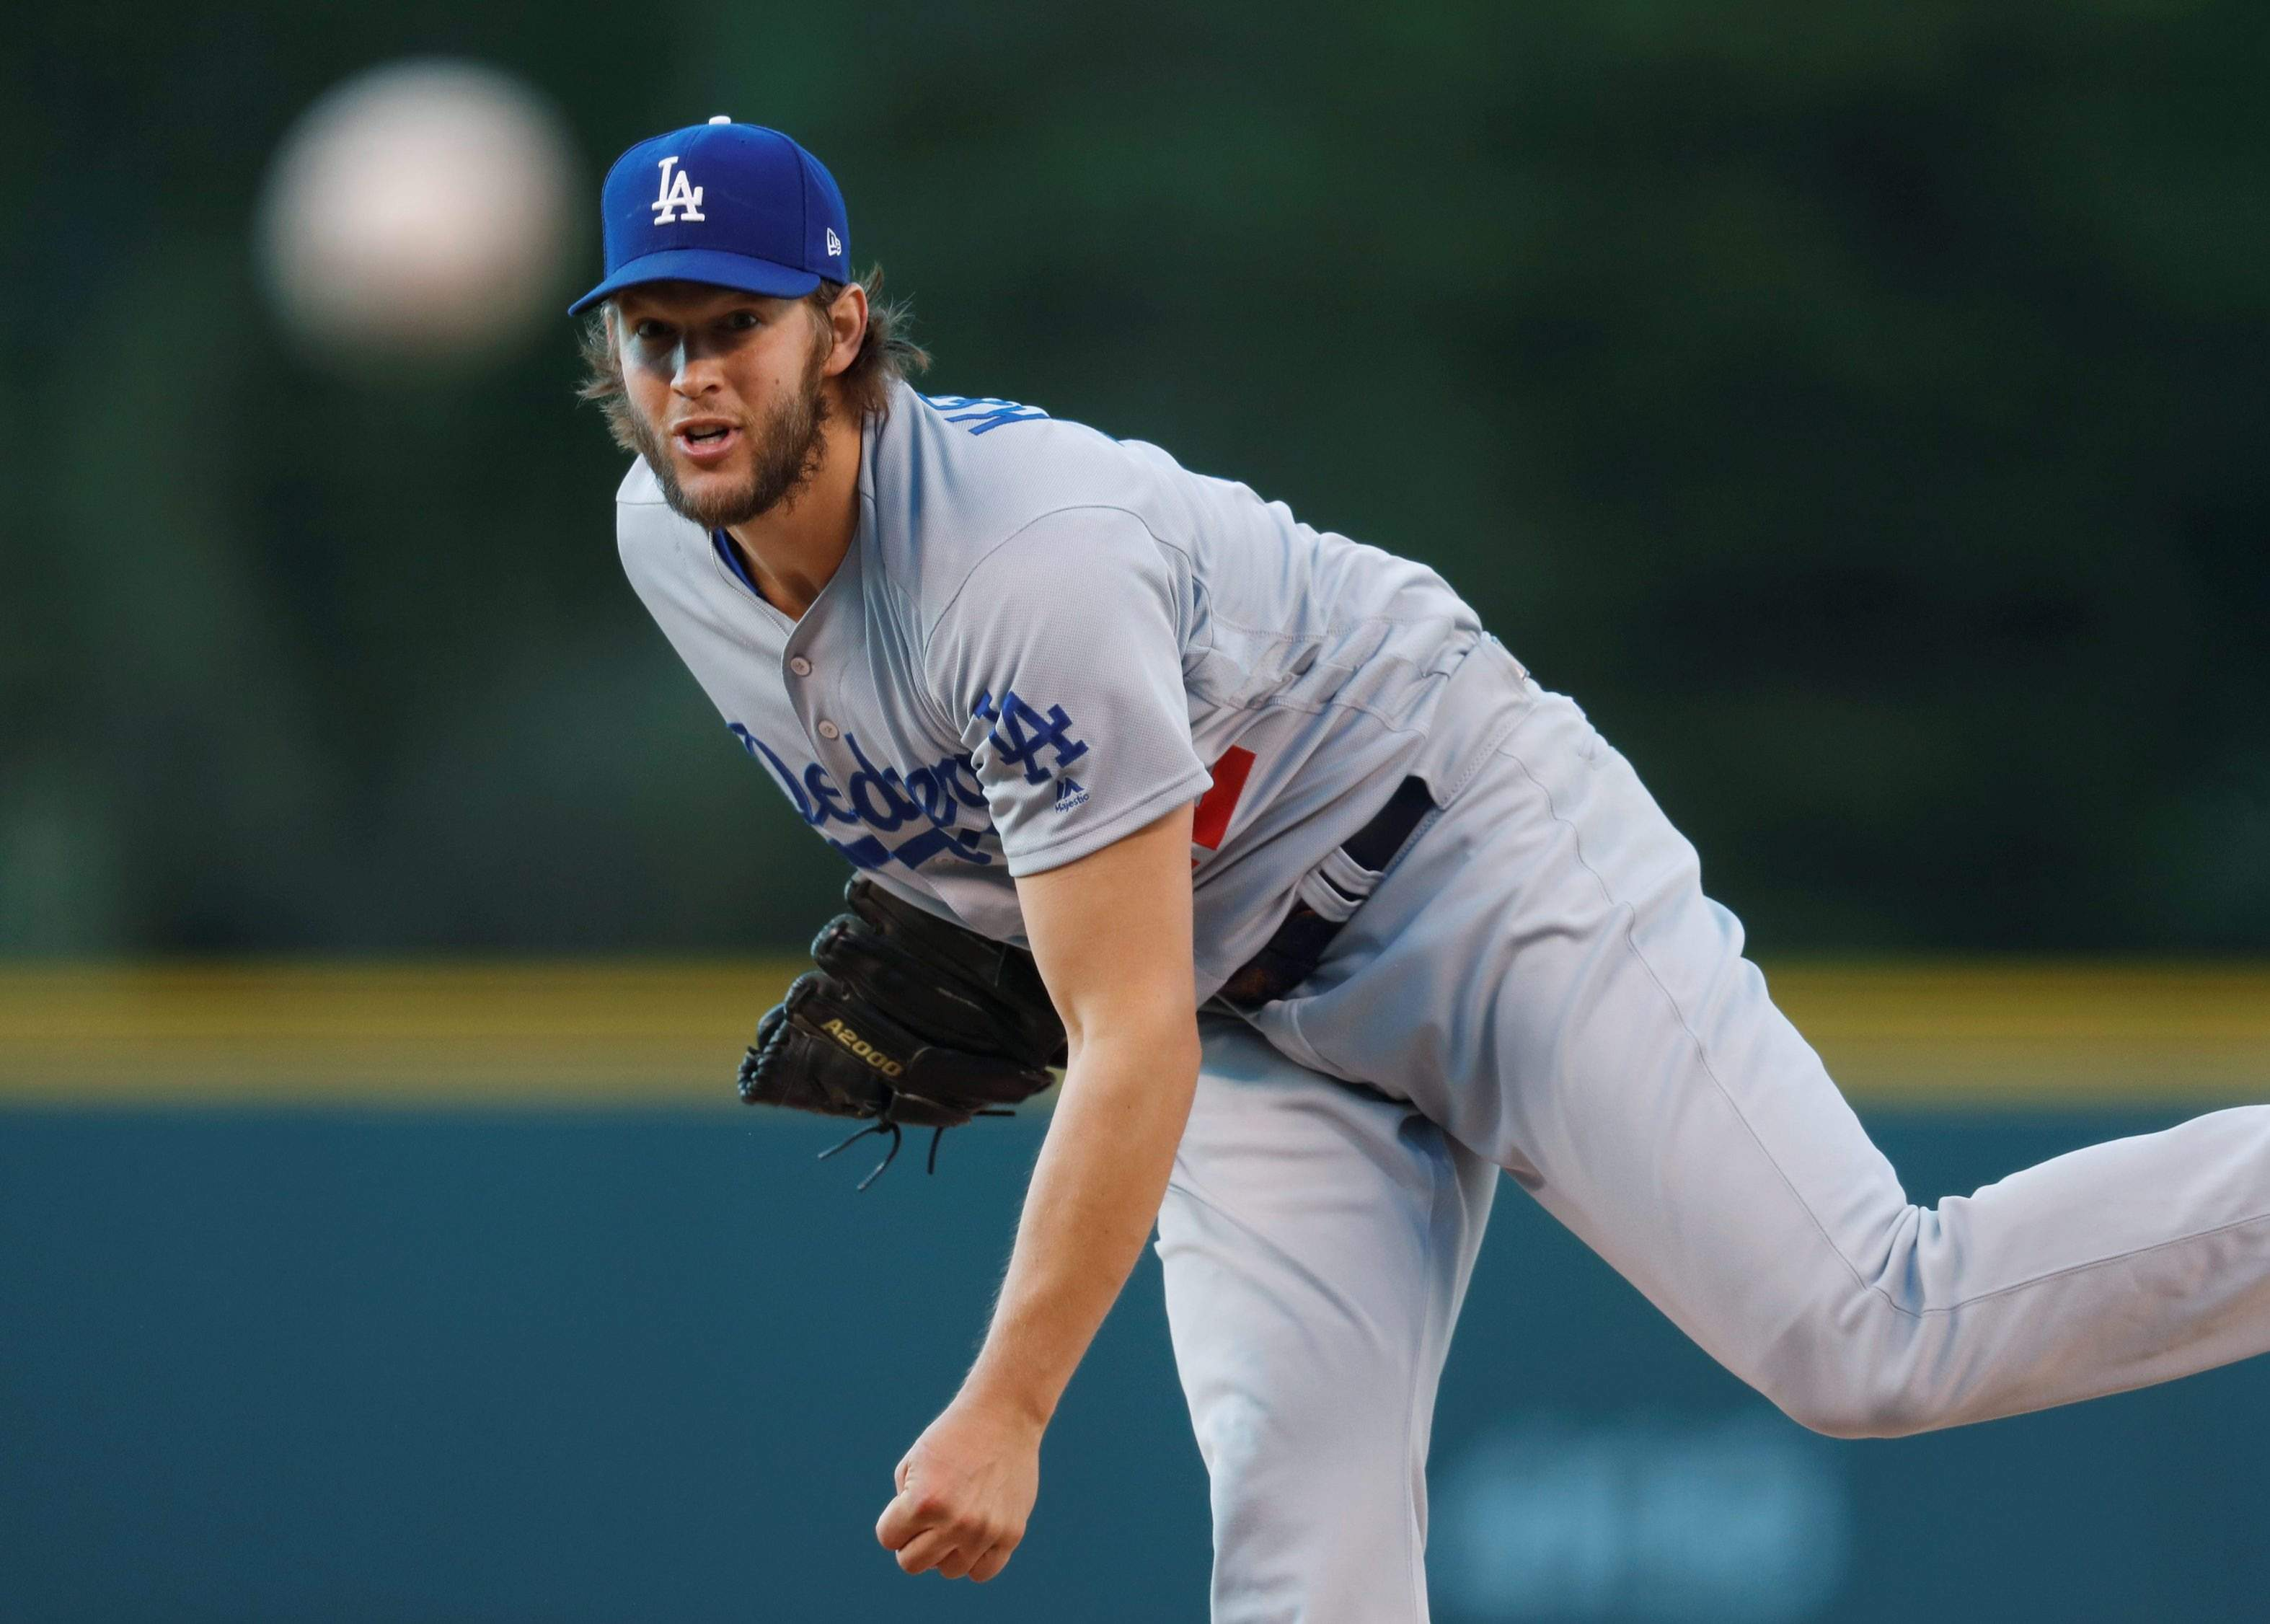 Los Angeles Dodgers Starting Pitcher Clayton Kershaw Throws To A Colorado Rockies Batter During The First Inning Of Baseball Game Friday May 12 2017